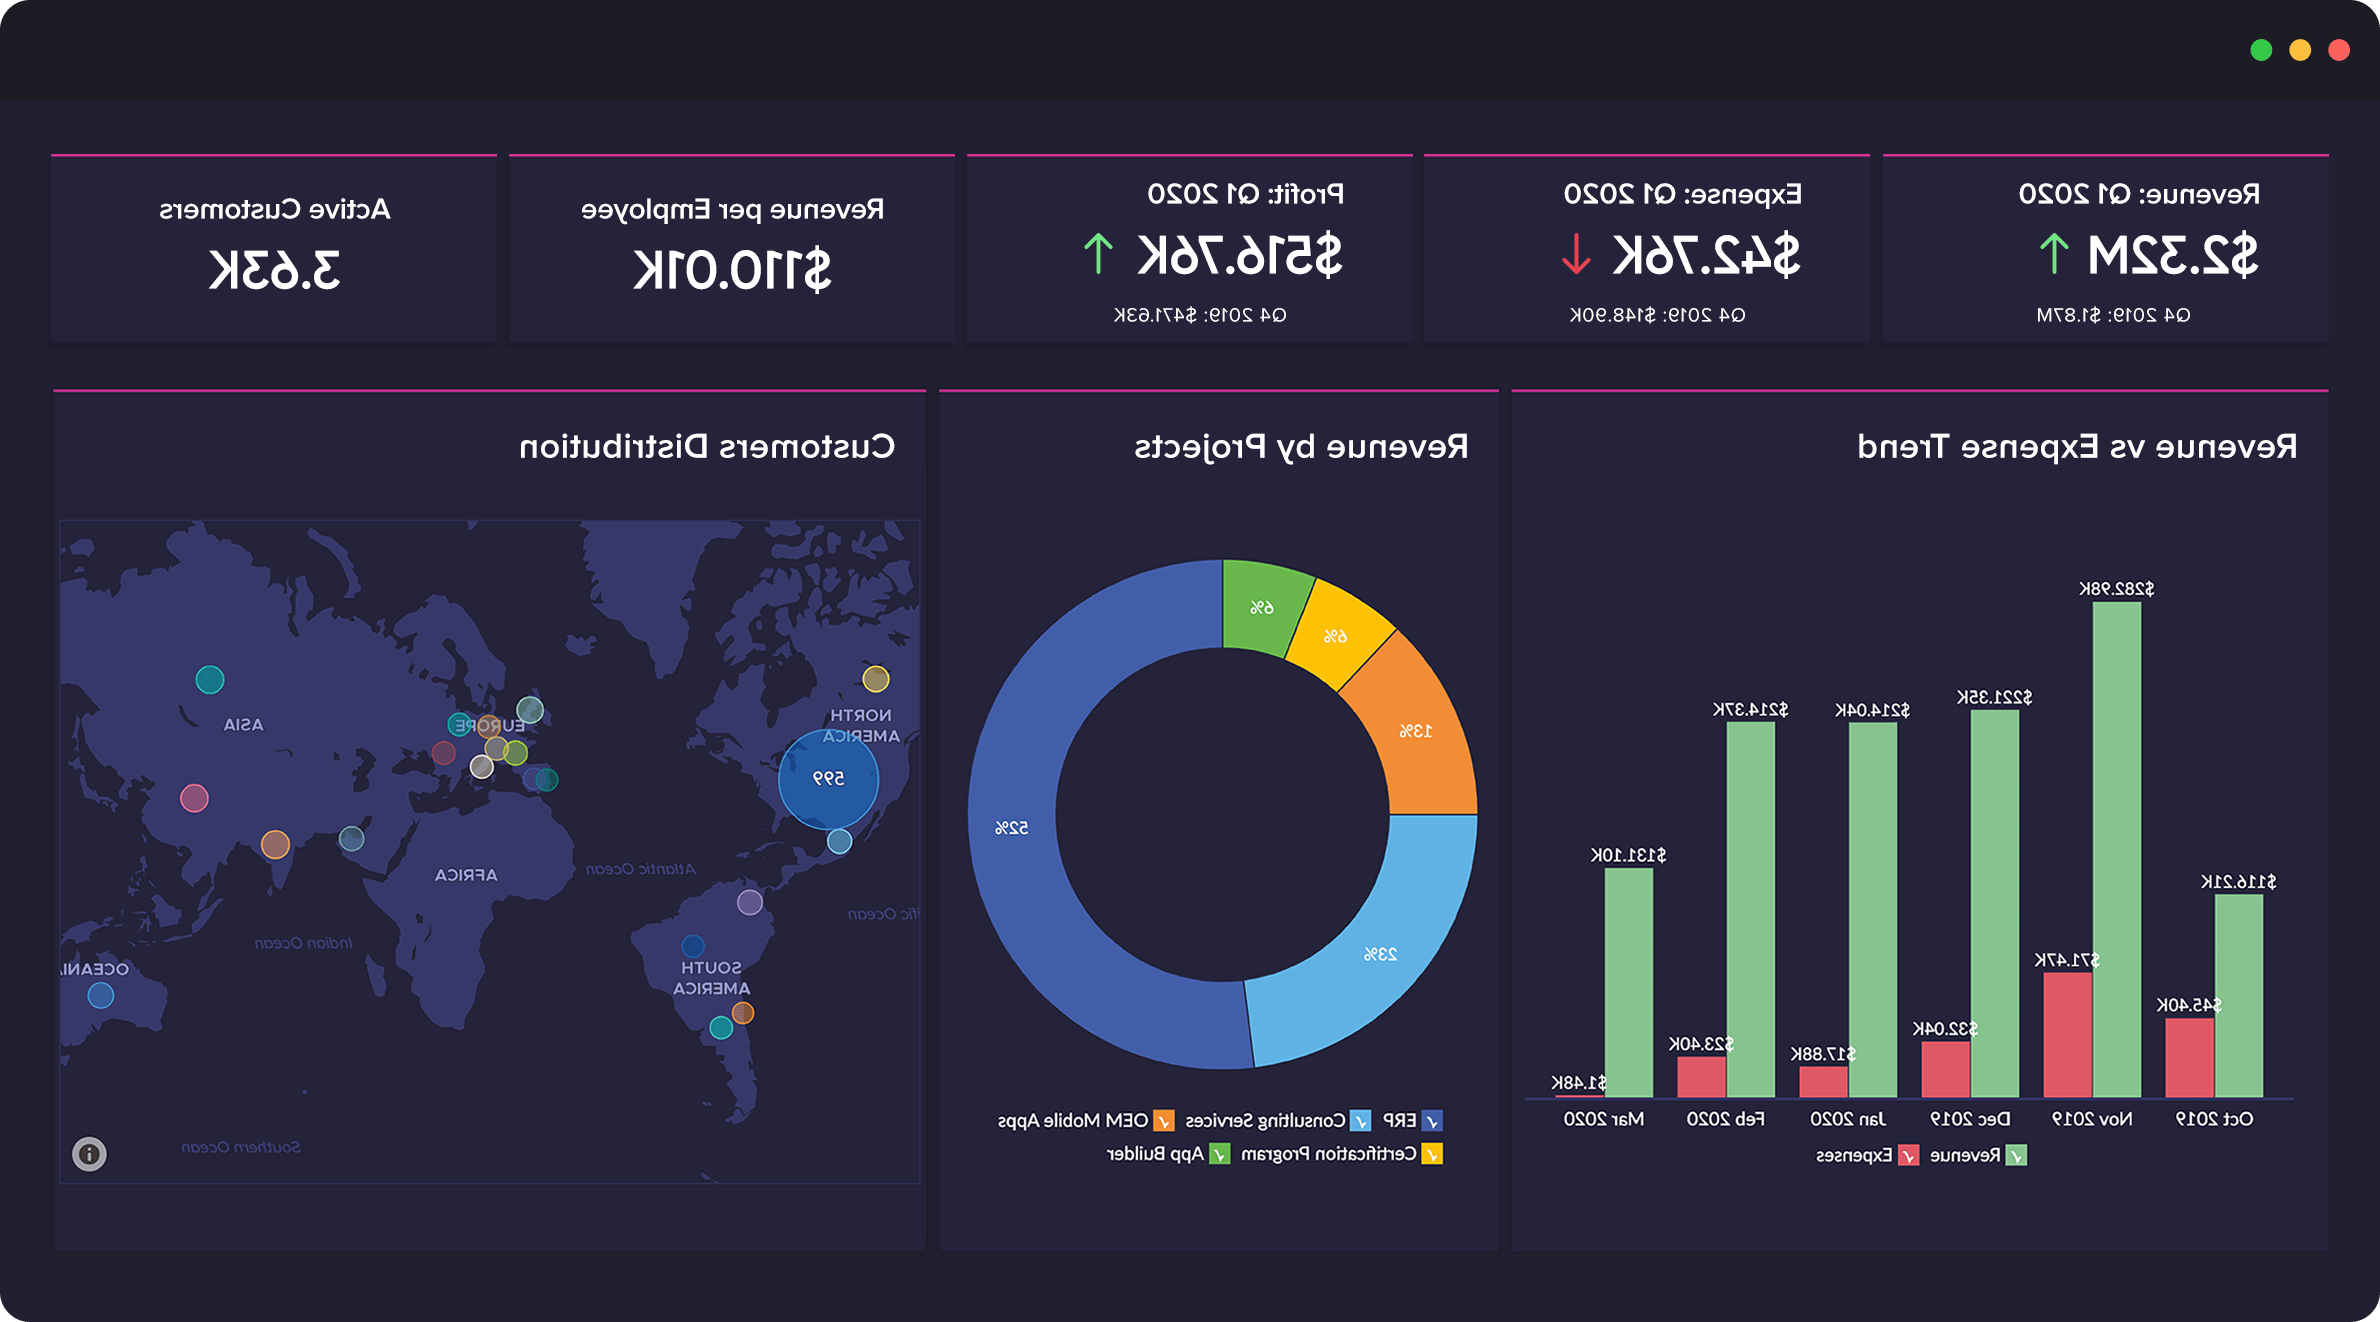 What is meaning of business intelligence dashboard